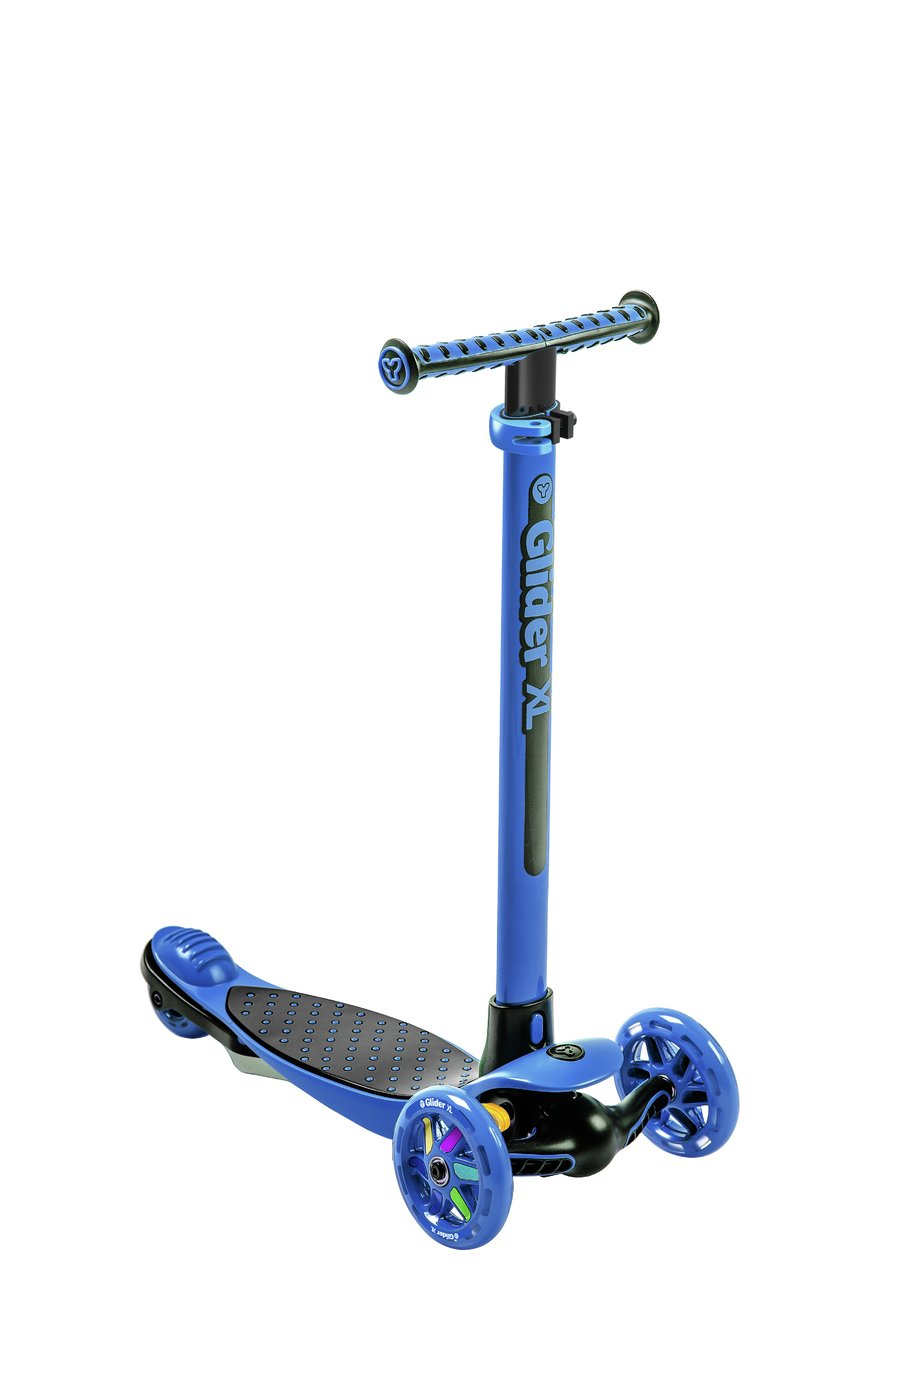 YGlider XL Scooter - Blue